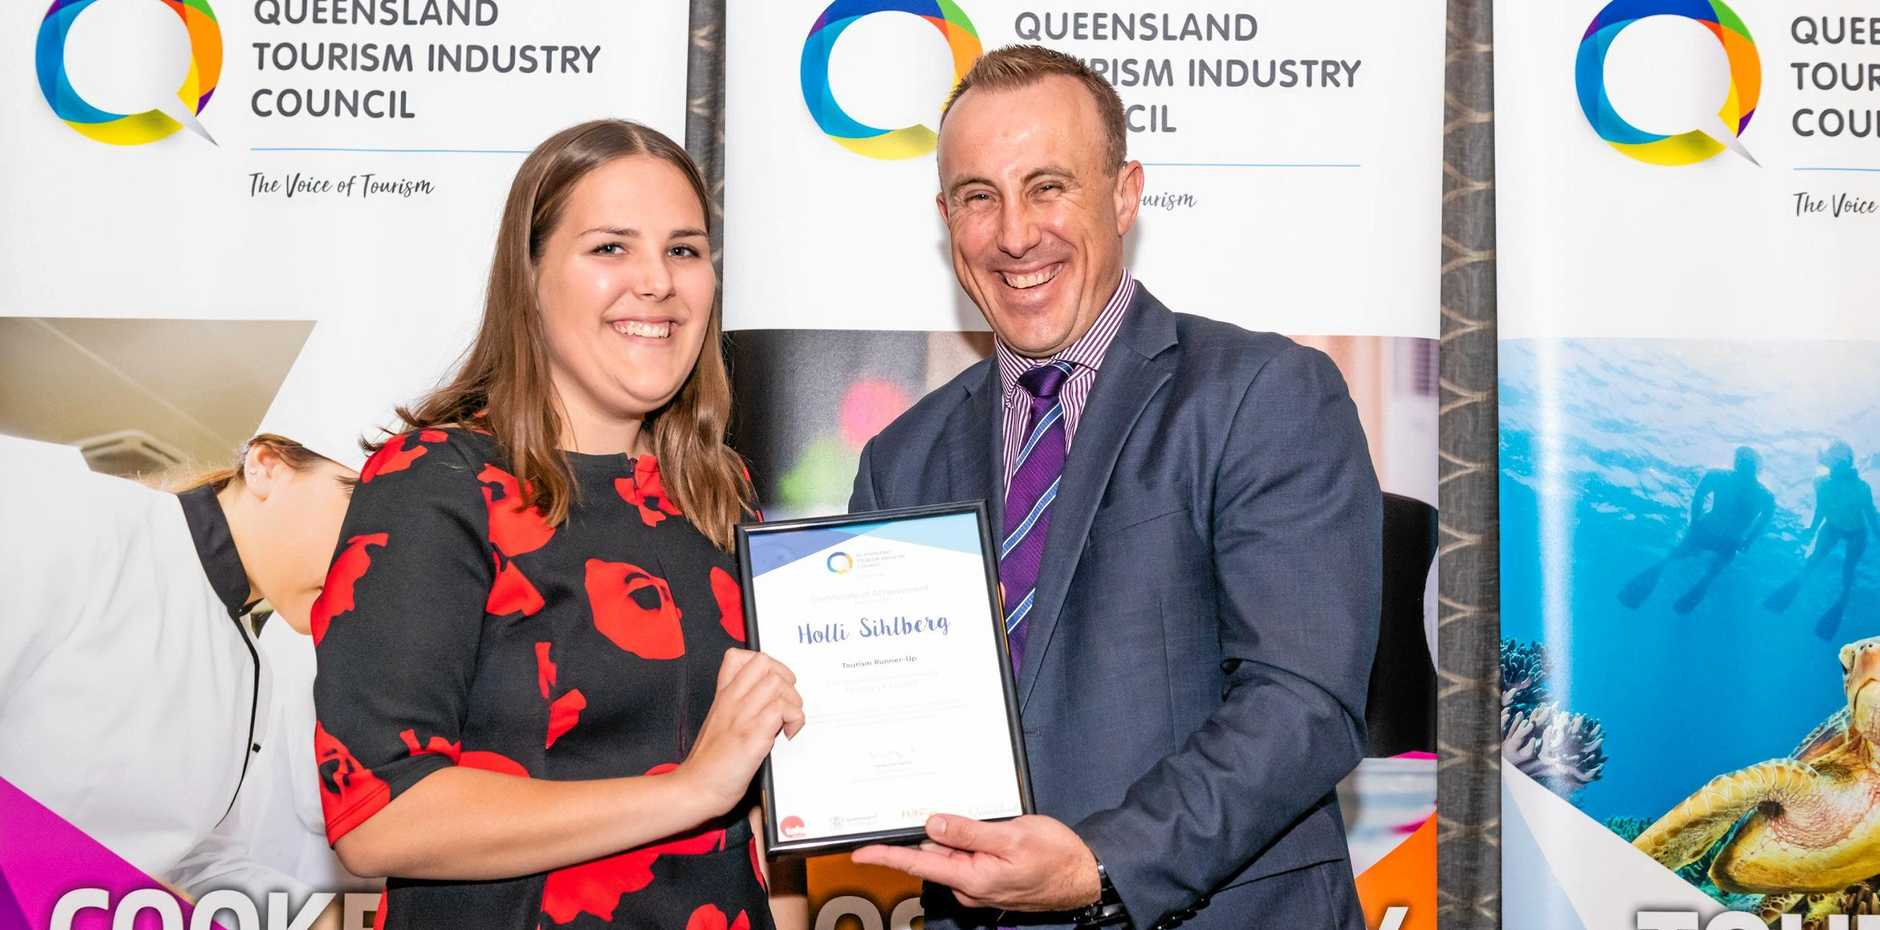 RUNNER-UP: Holli Sihlberg receives Runner-Up in Tourism at the QTIC Salute to Excellence Awards, presented by Steve Koch, Department of Education, Training and Employment.